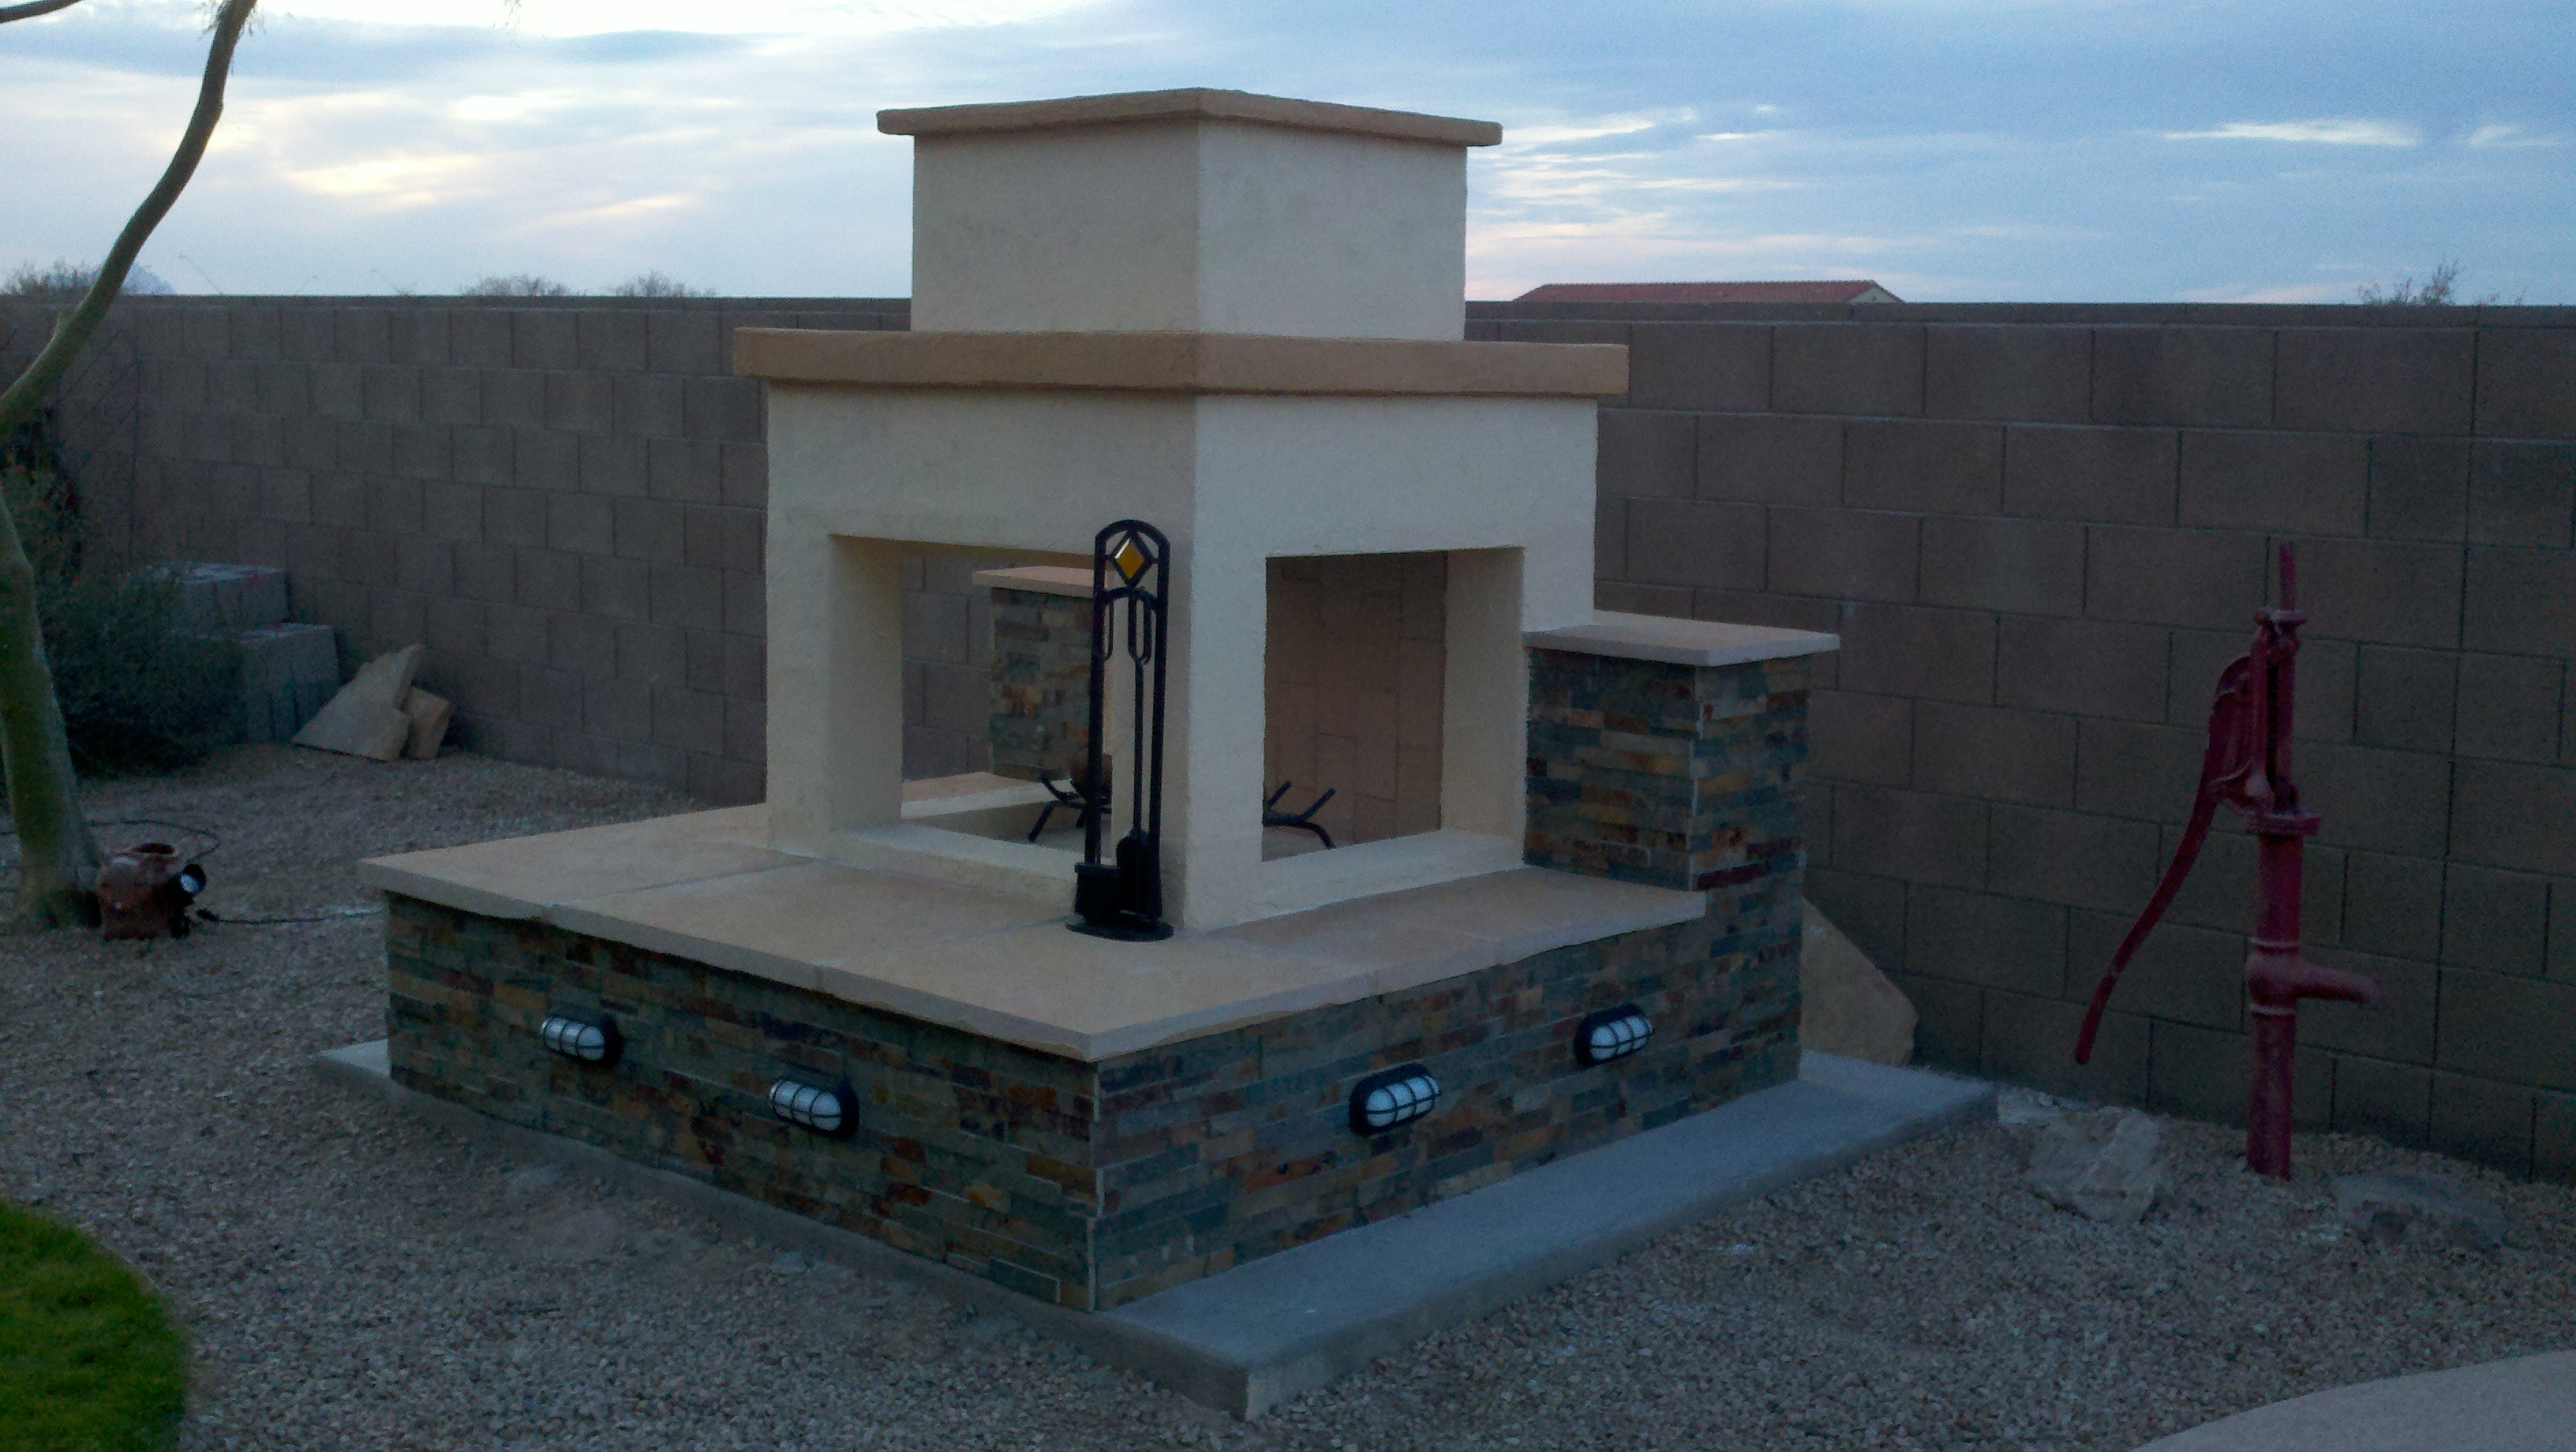 3 Great Ways to Finish Your Outdoor Fireplace | Your DIY ... on Building Outdoor Fireplace With Cinder Block id=90446